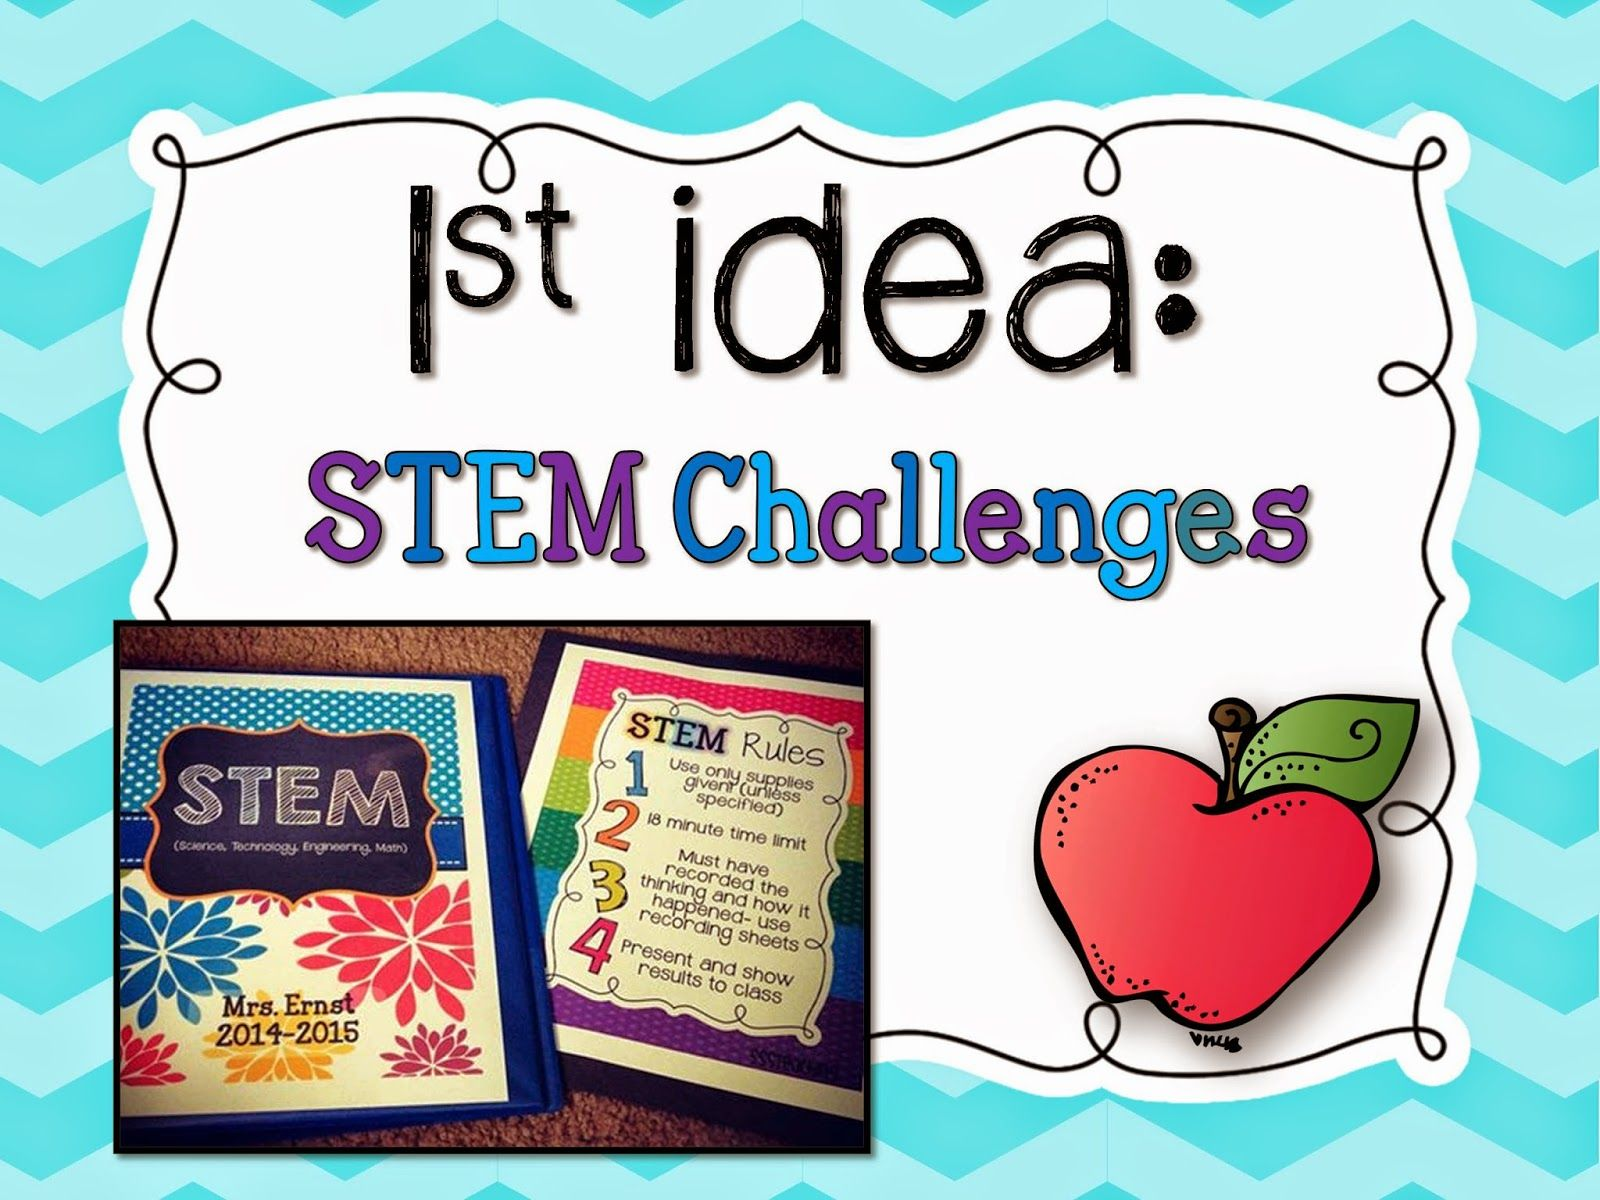 Getting Started With Stem